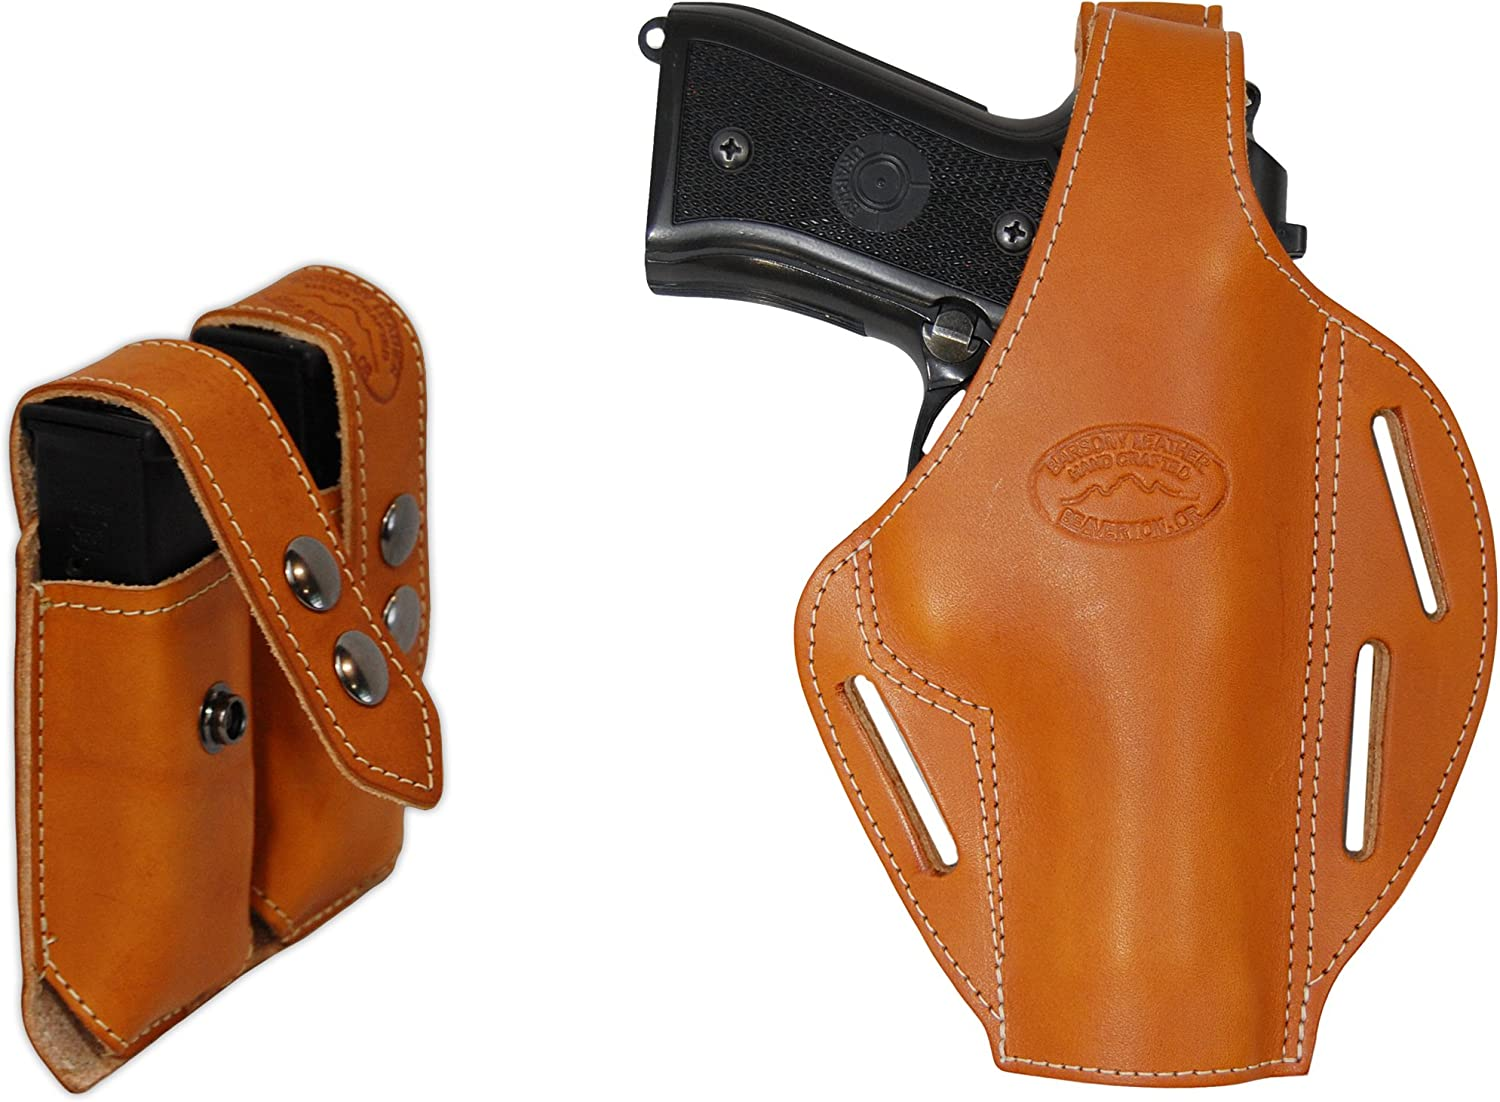 NEW Barsony Double Magazine Pouch for Springfield Full Size 9mm 40 45 Pistols